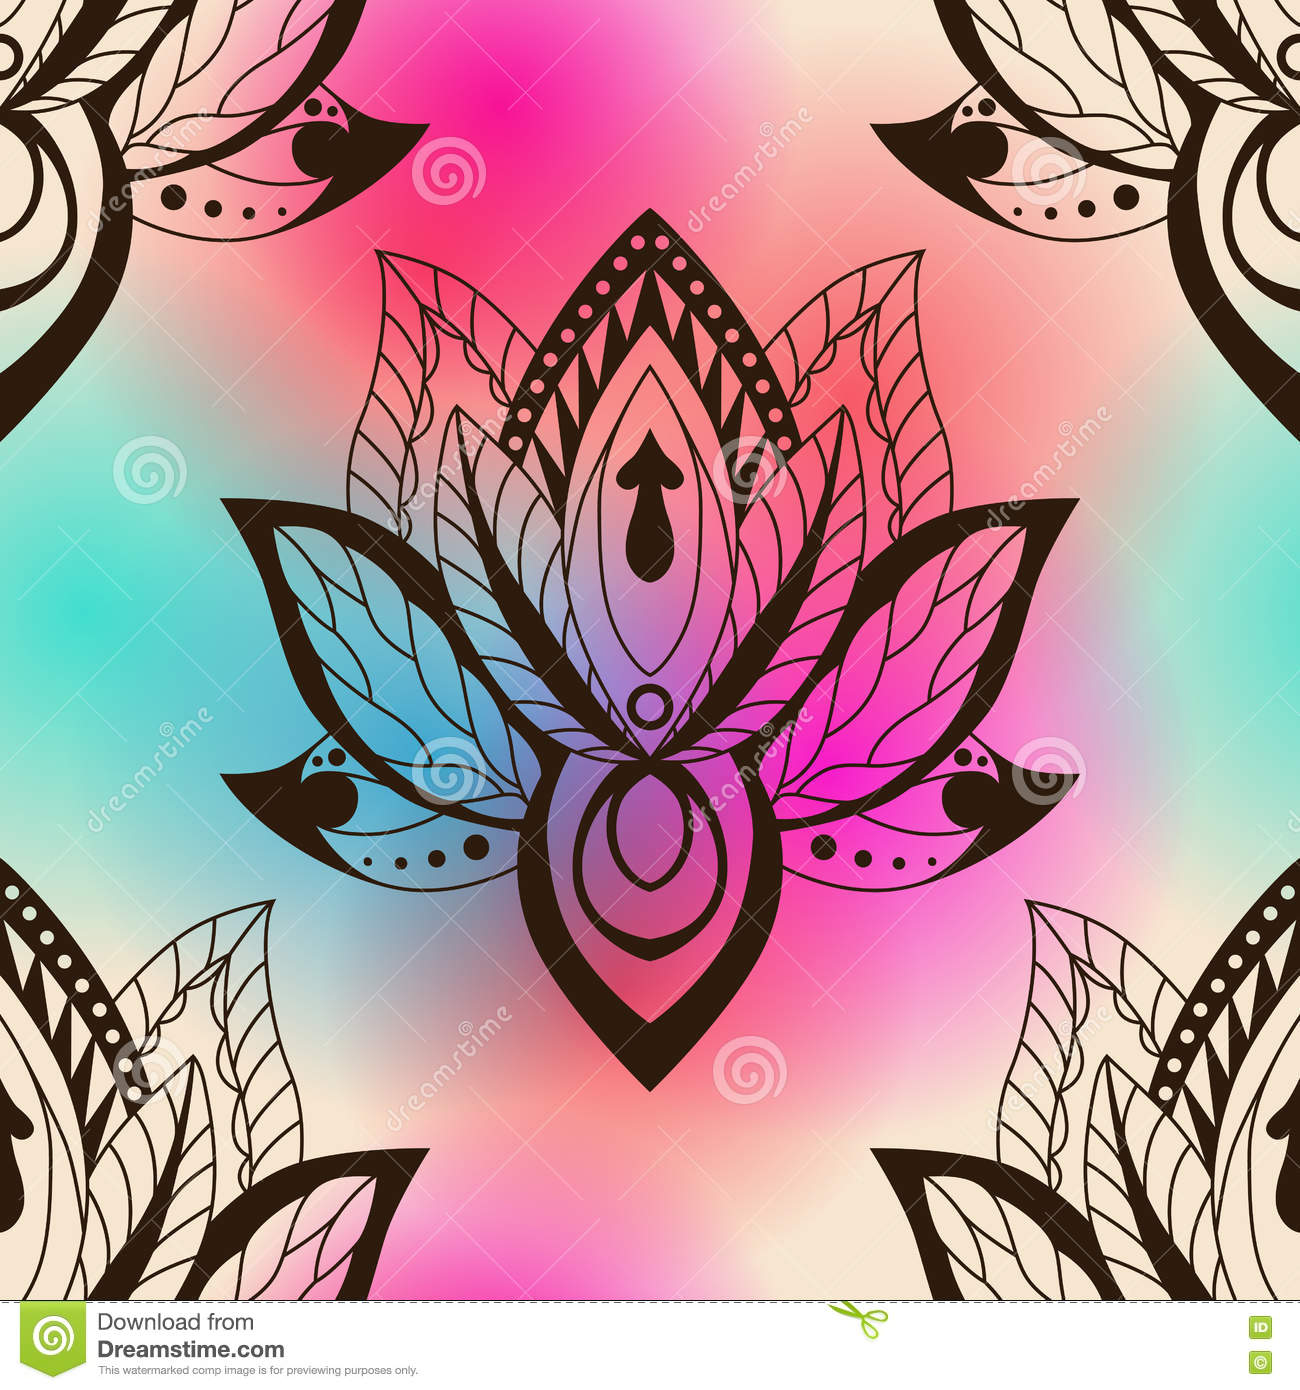 Lotus Flower Design Wall Paper : Vector abstract seamless pattern with lotus flowers